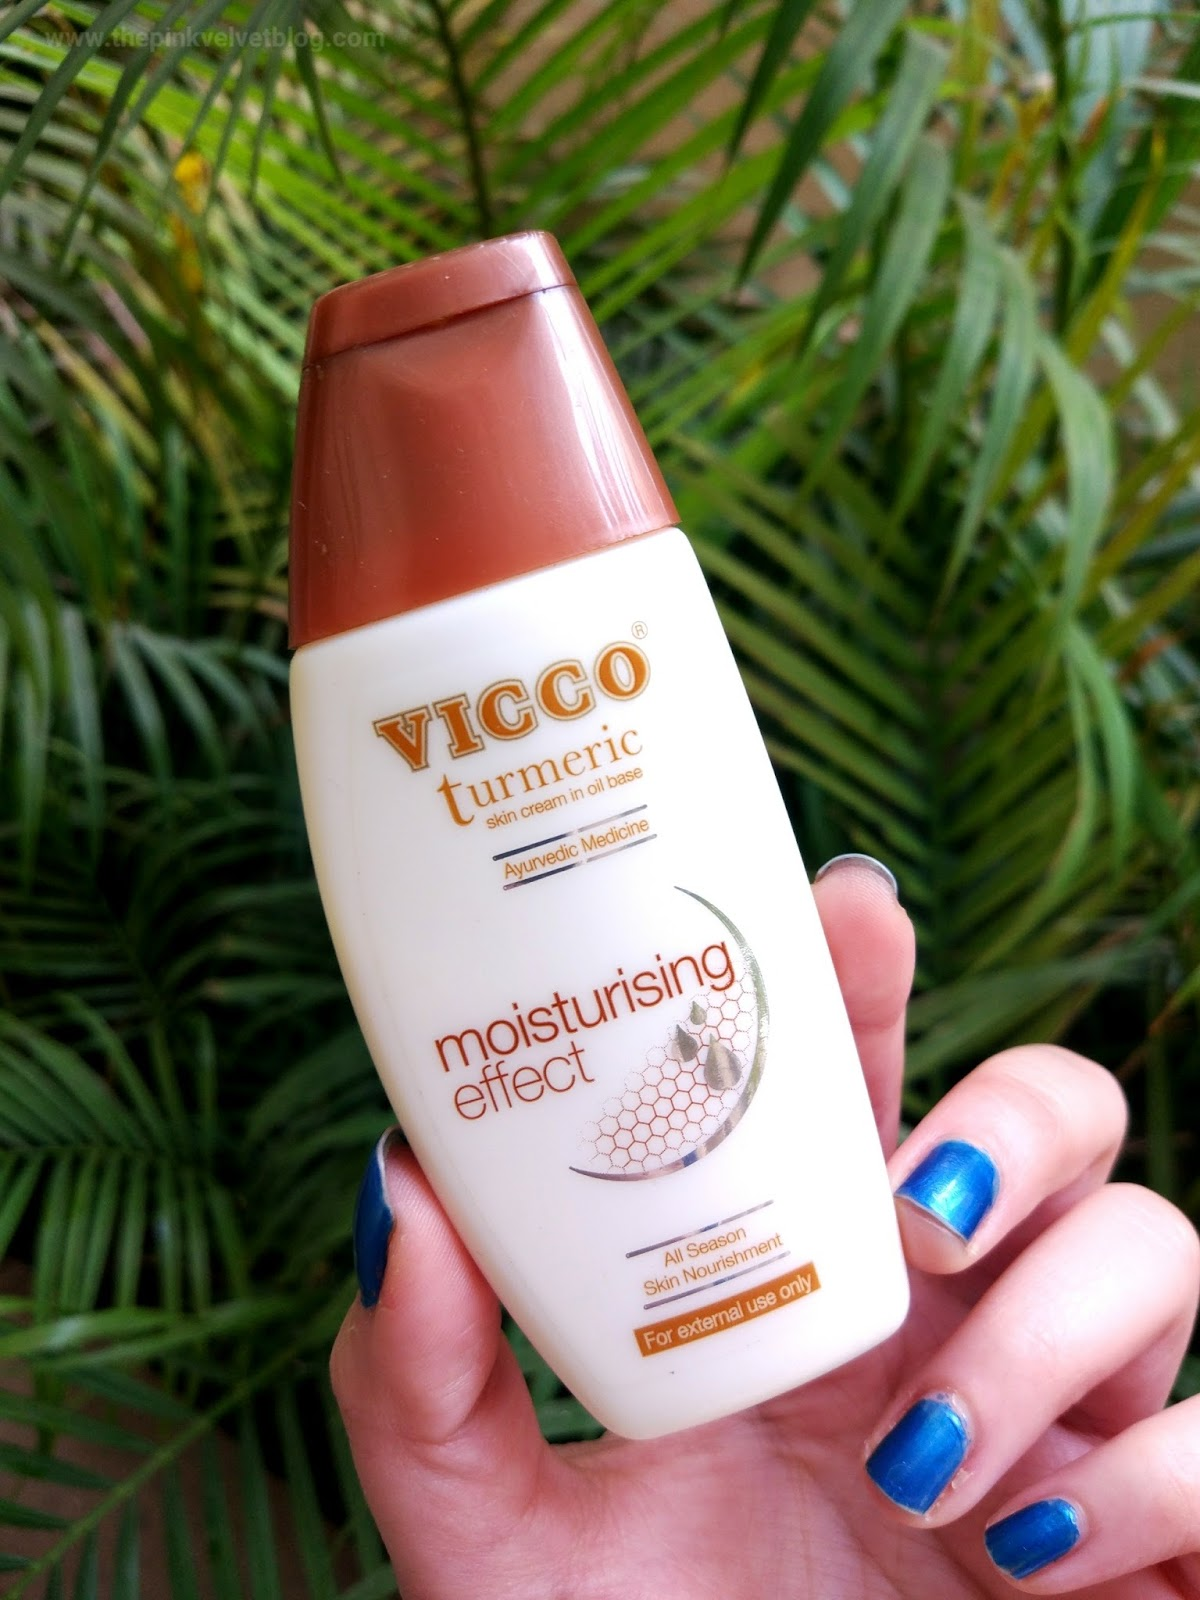 VICCO Turmeric Skin Cream in Oil Base (Moisturizing Effect) - Paraben-Free Moisturizers in India for Oily, Sensitive and Acne-Prone Skin